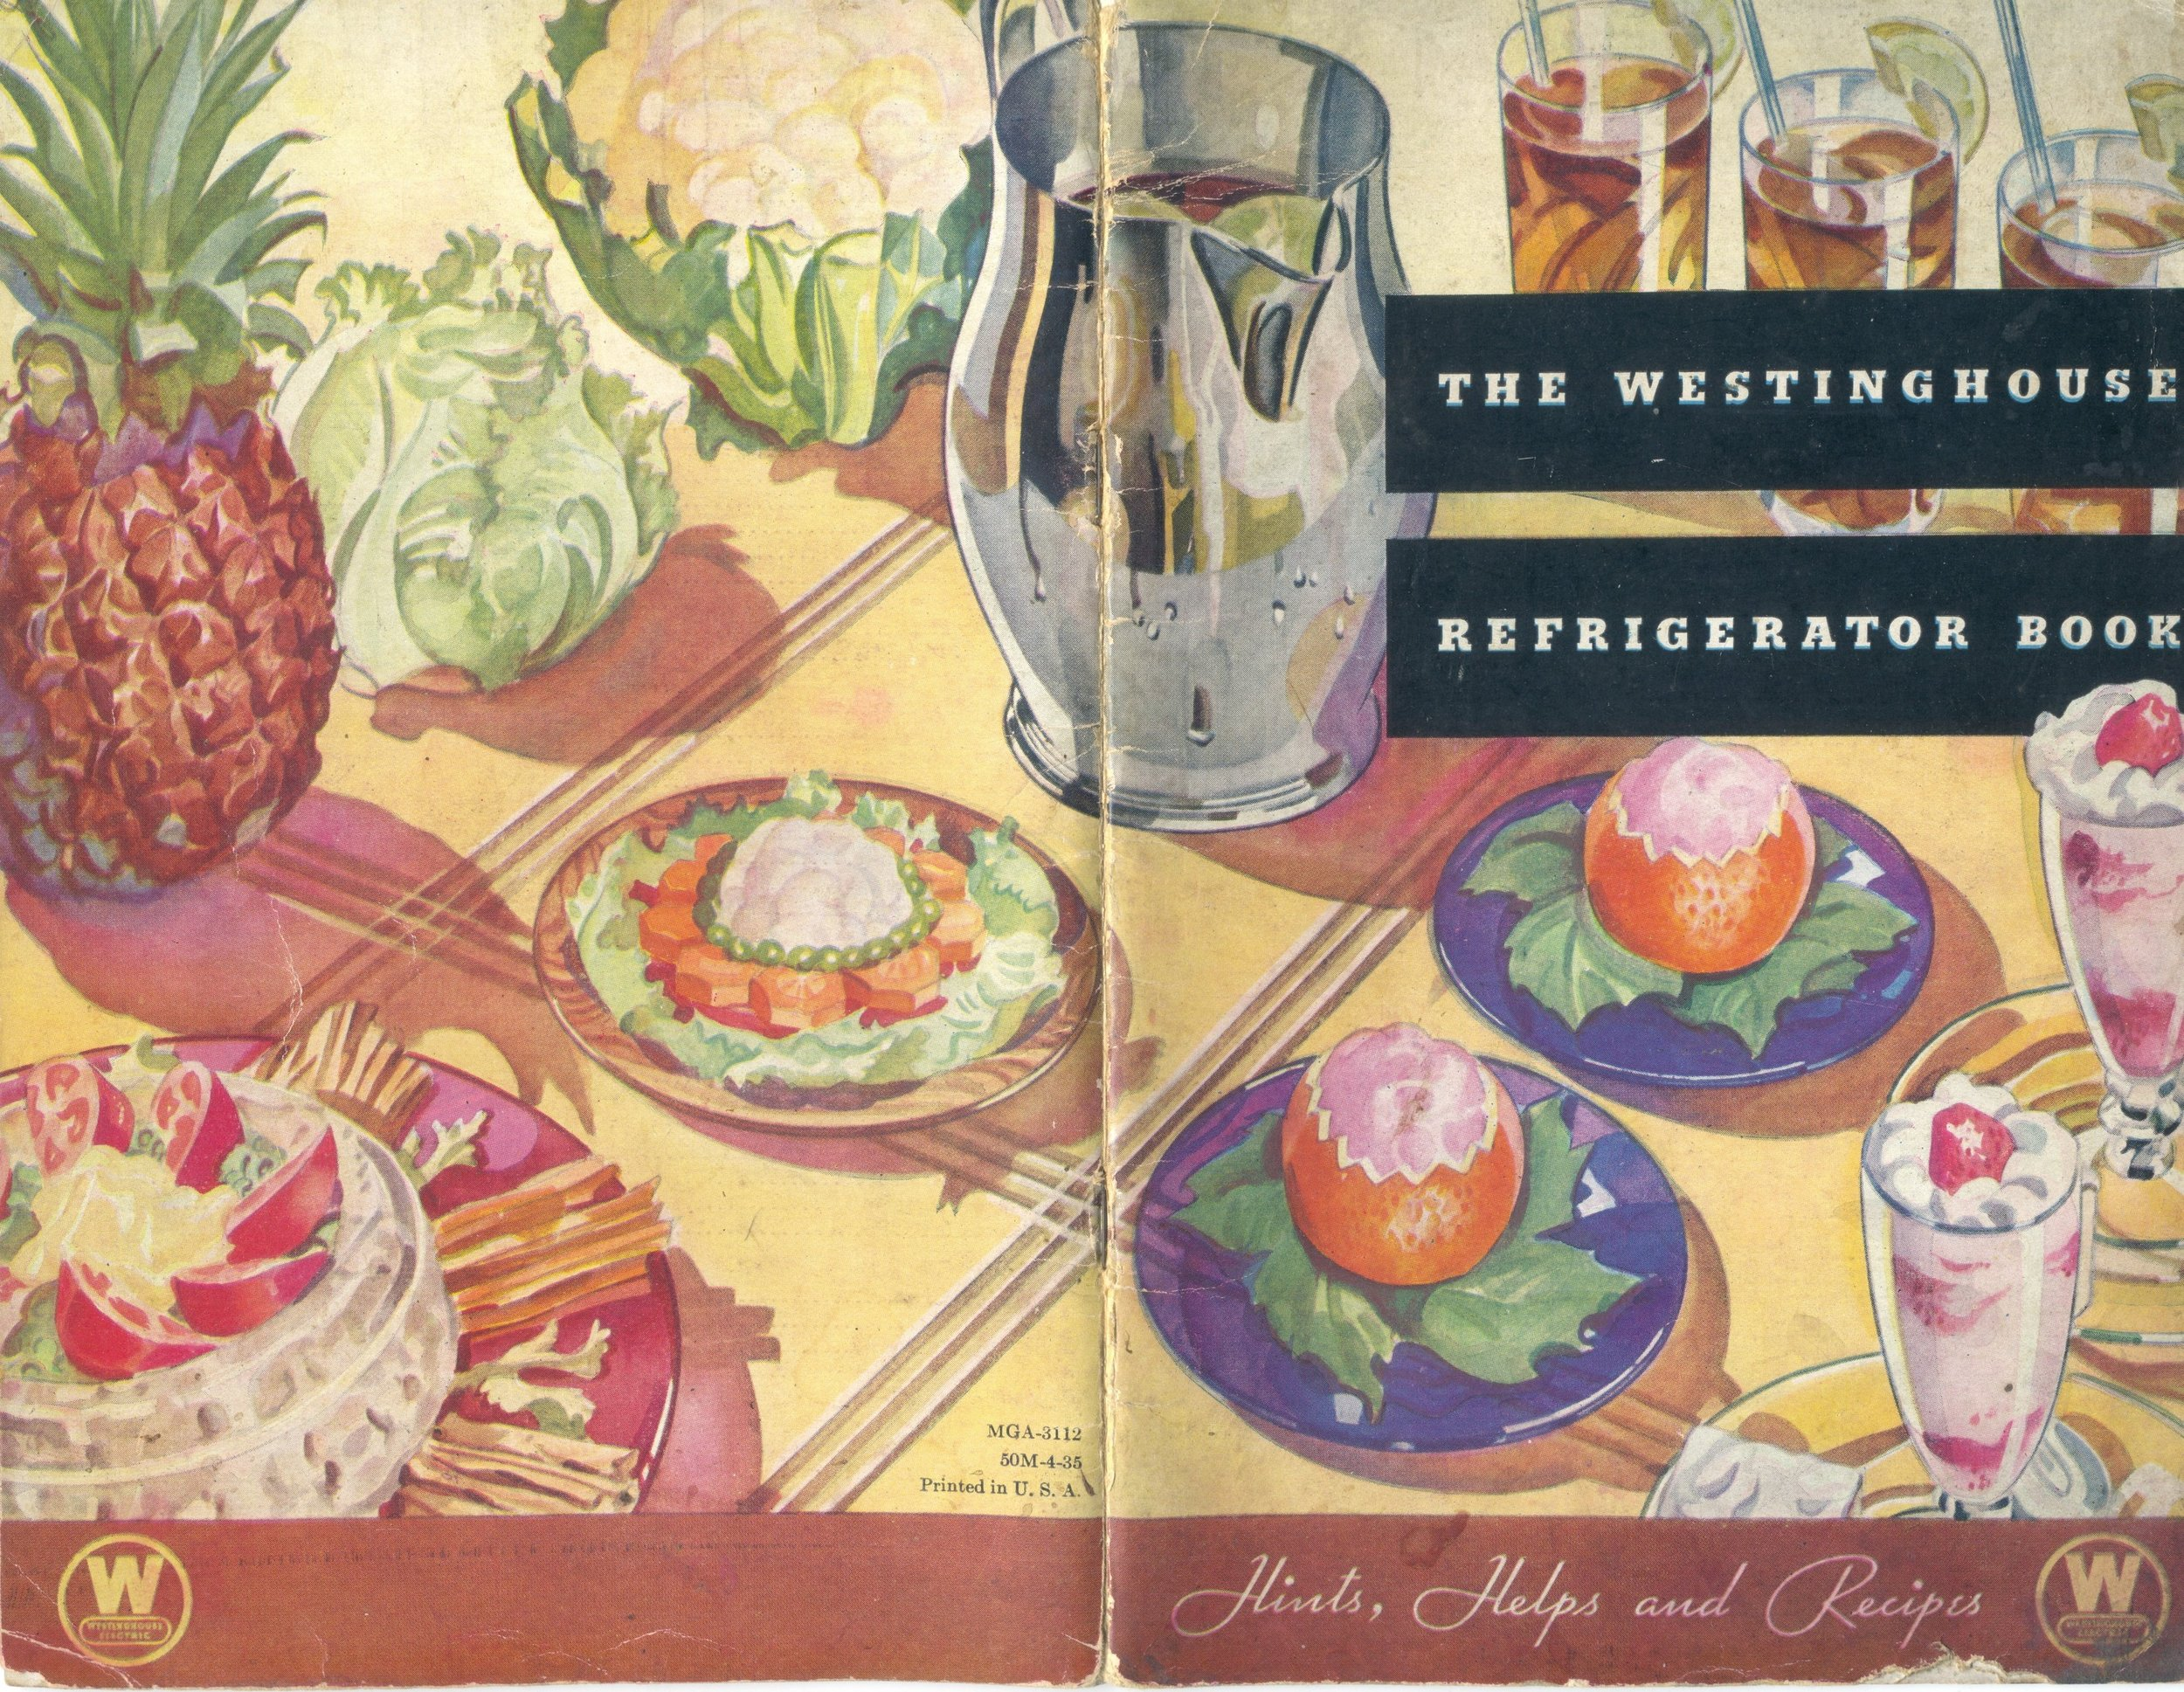 One of the first Westinghouse things I collected were appliance booklets ... they had such interesting graphics. This is a 1934 refrigerator booklet.